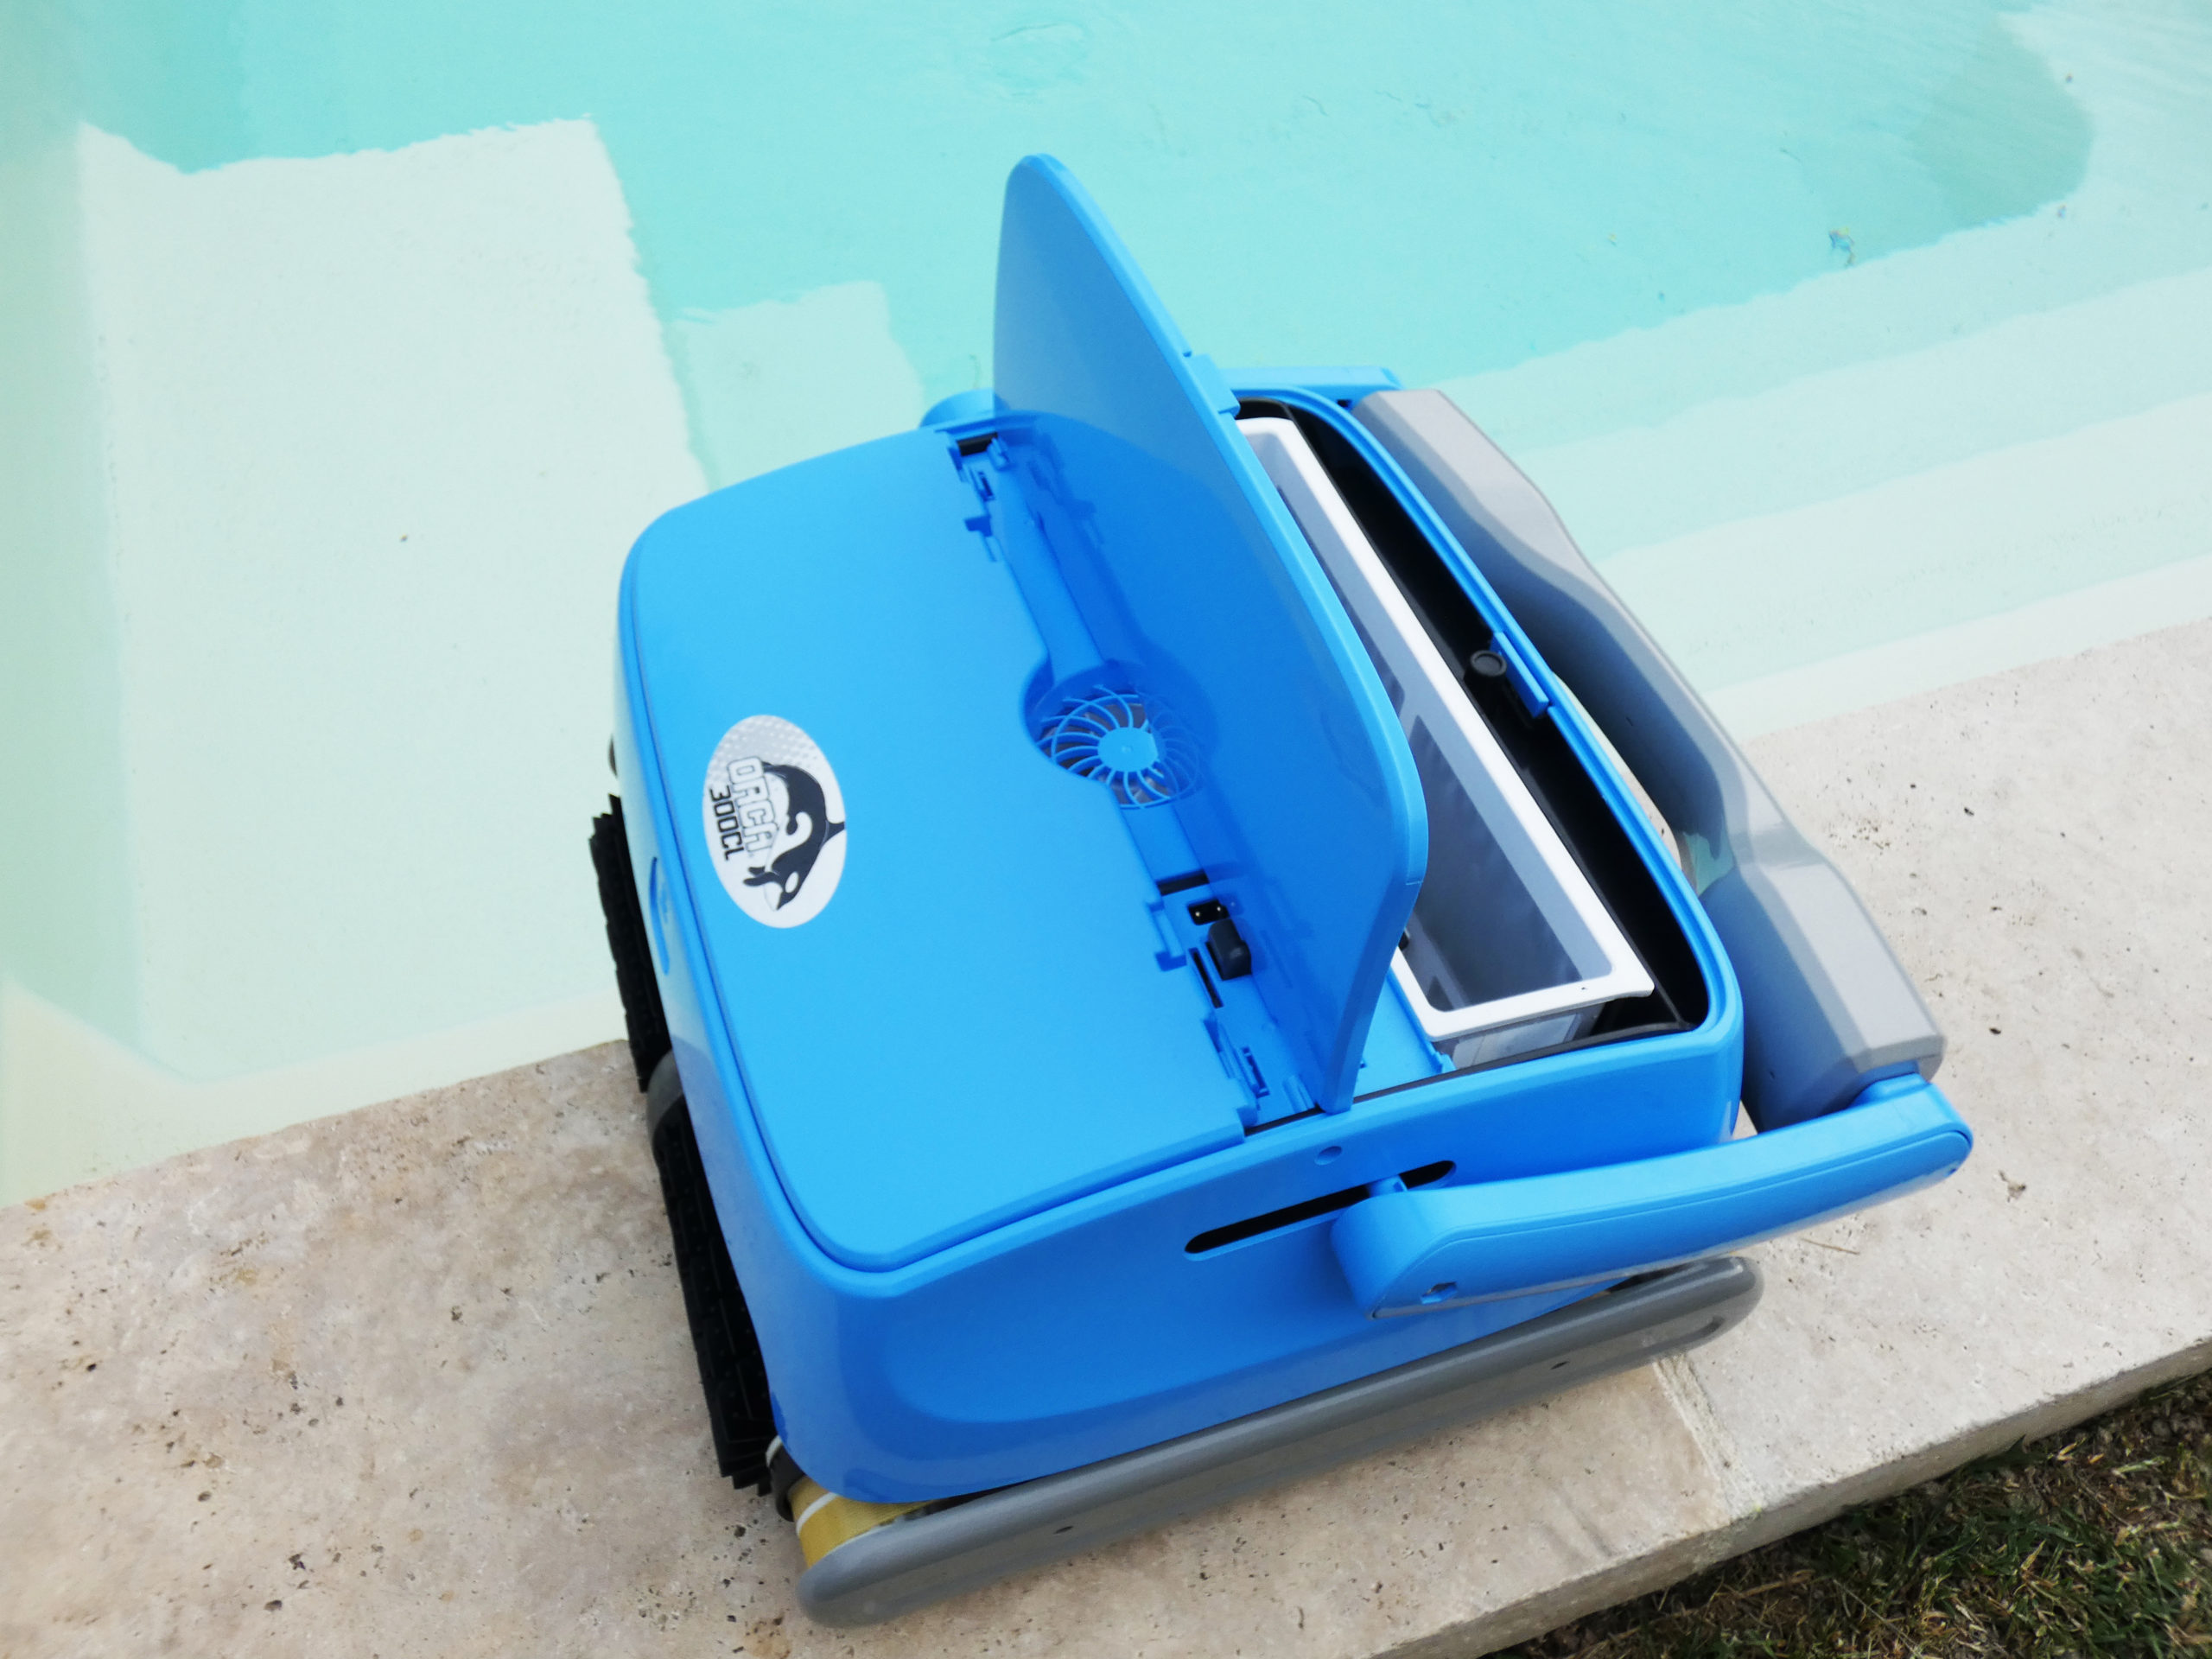 Pool cleaner Orca 250